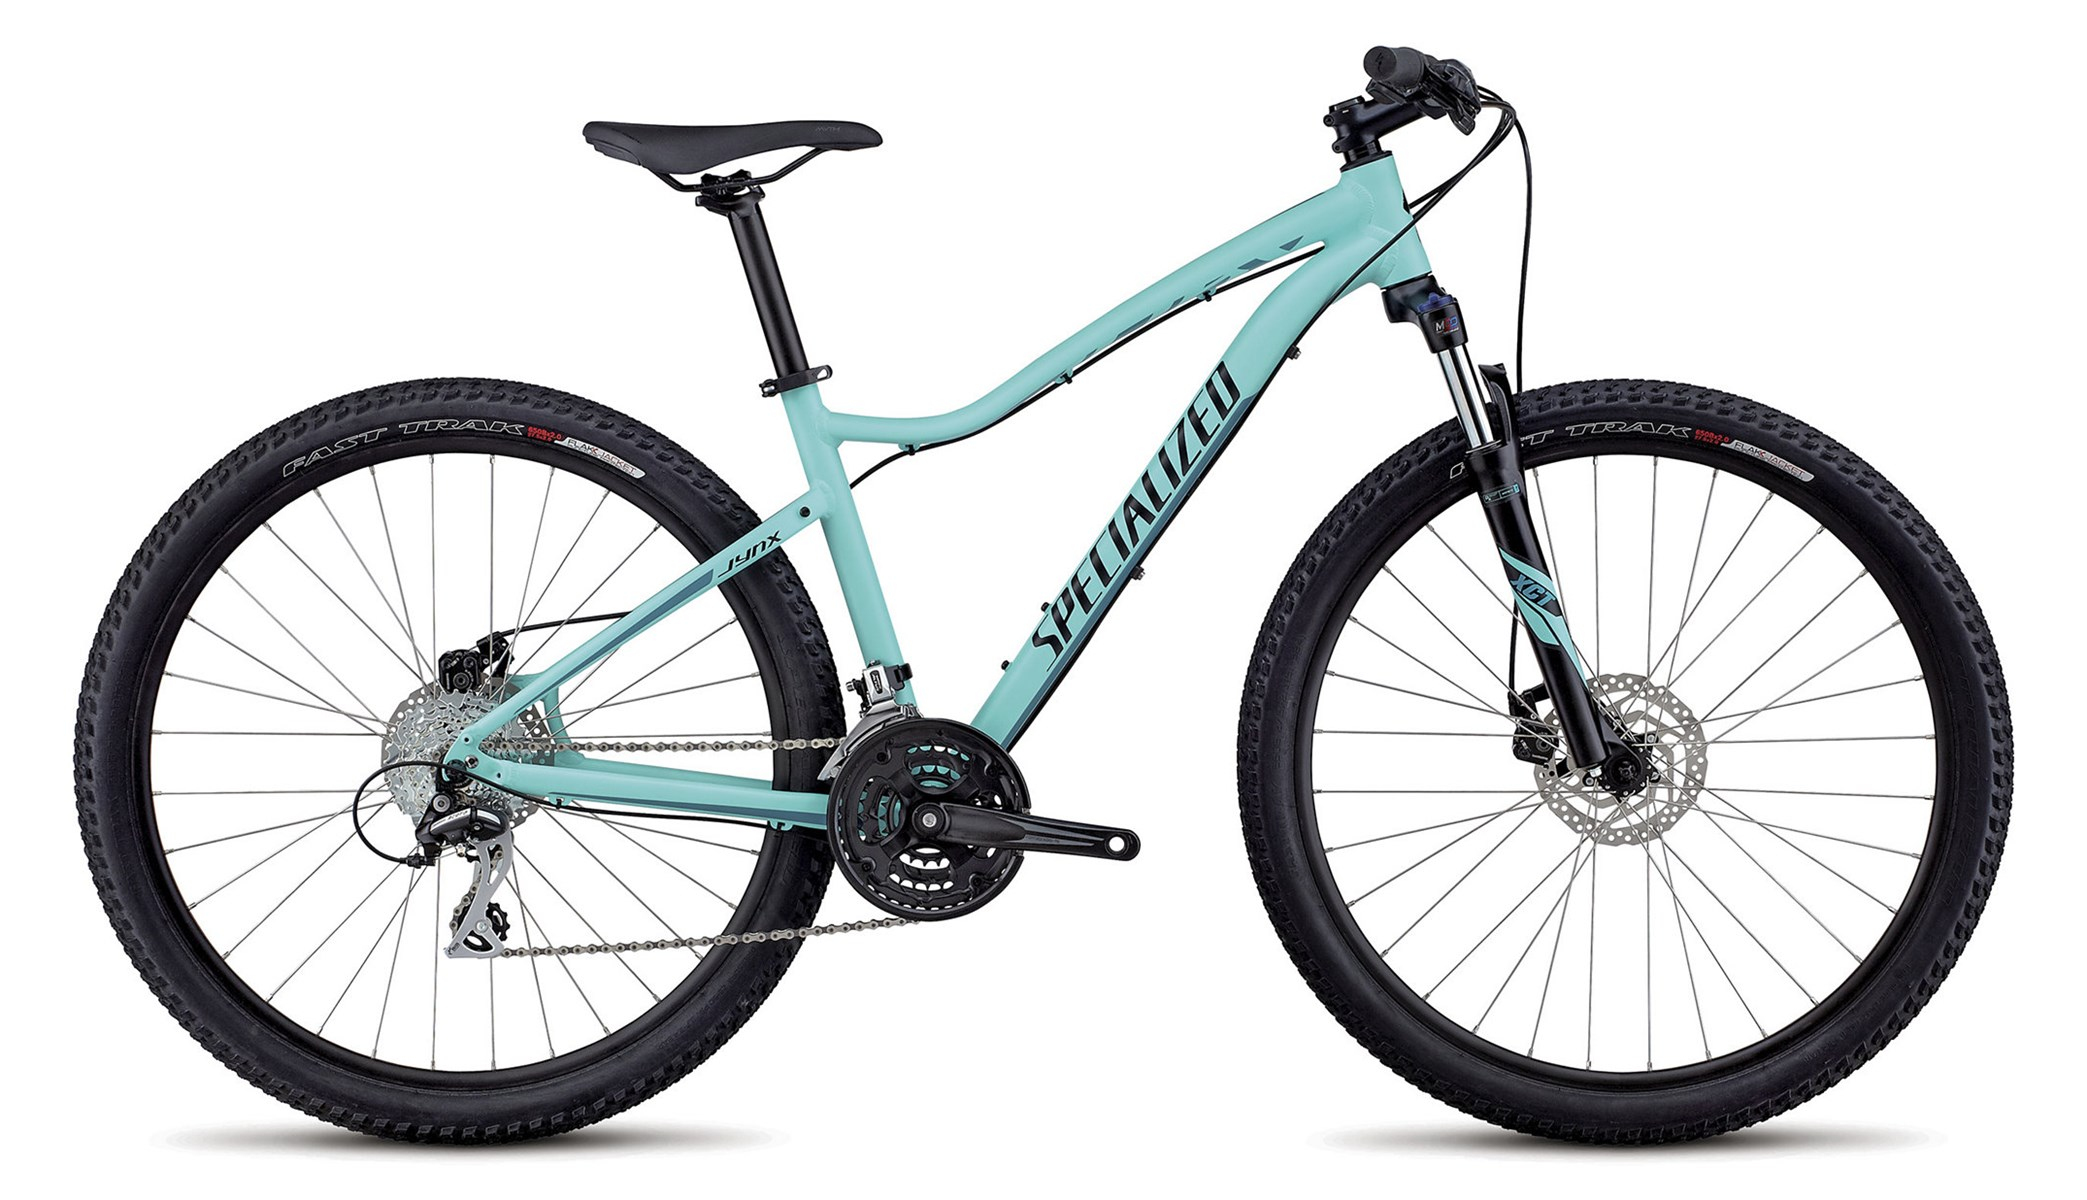 Specialized Rockhopper PRO 29 - YouTube